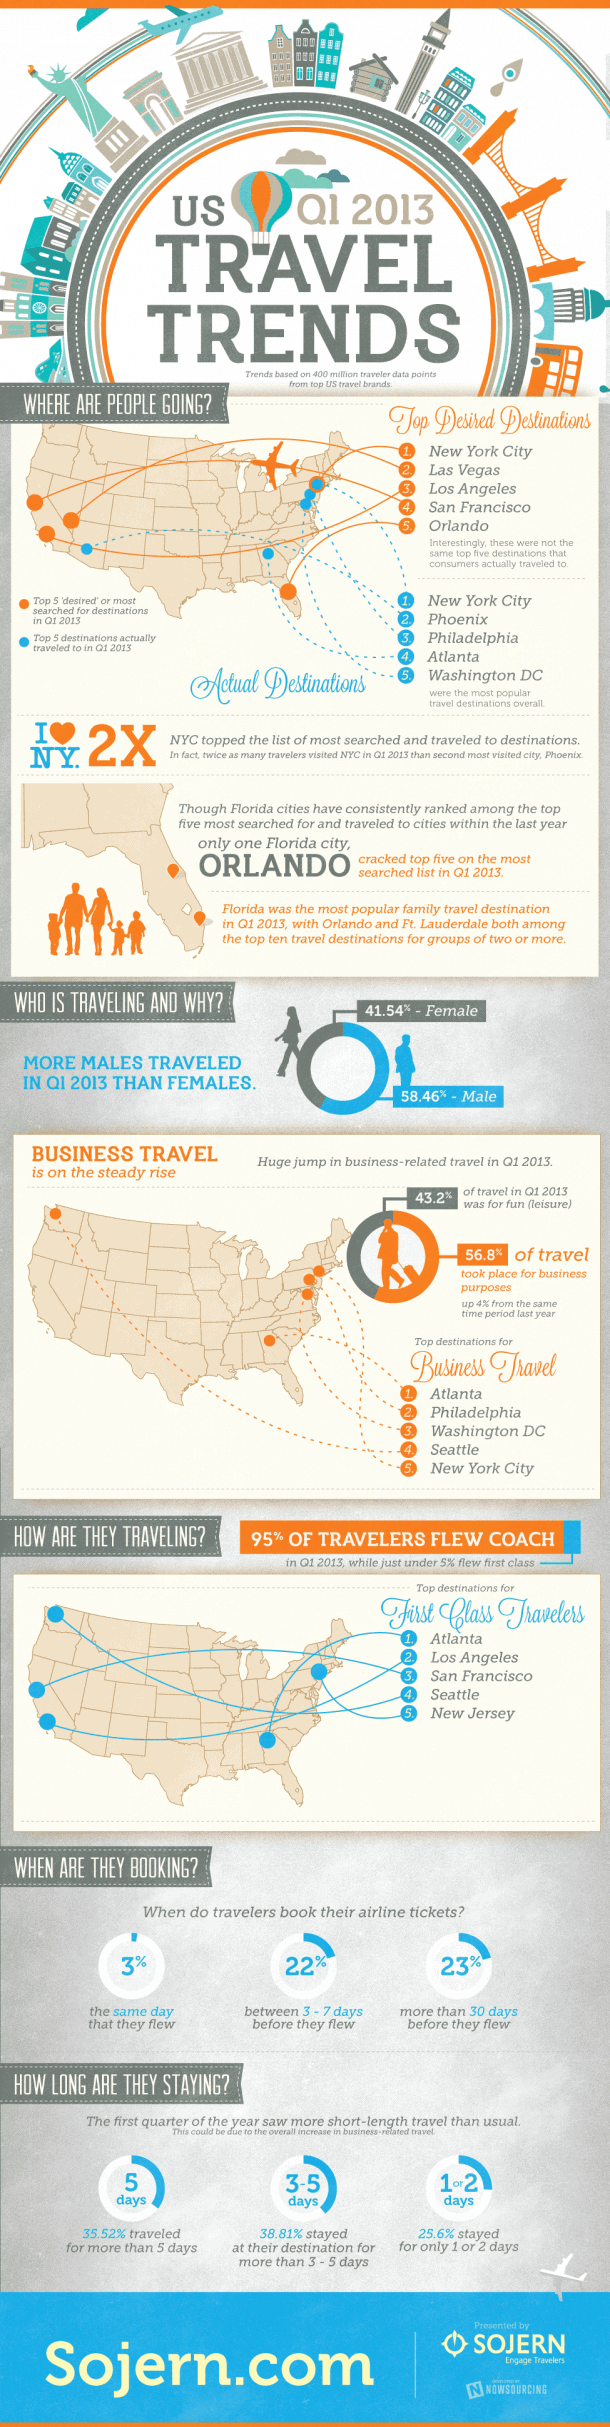 Travel Trends Infographic - Q1 2013